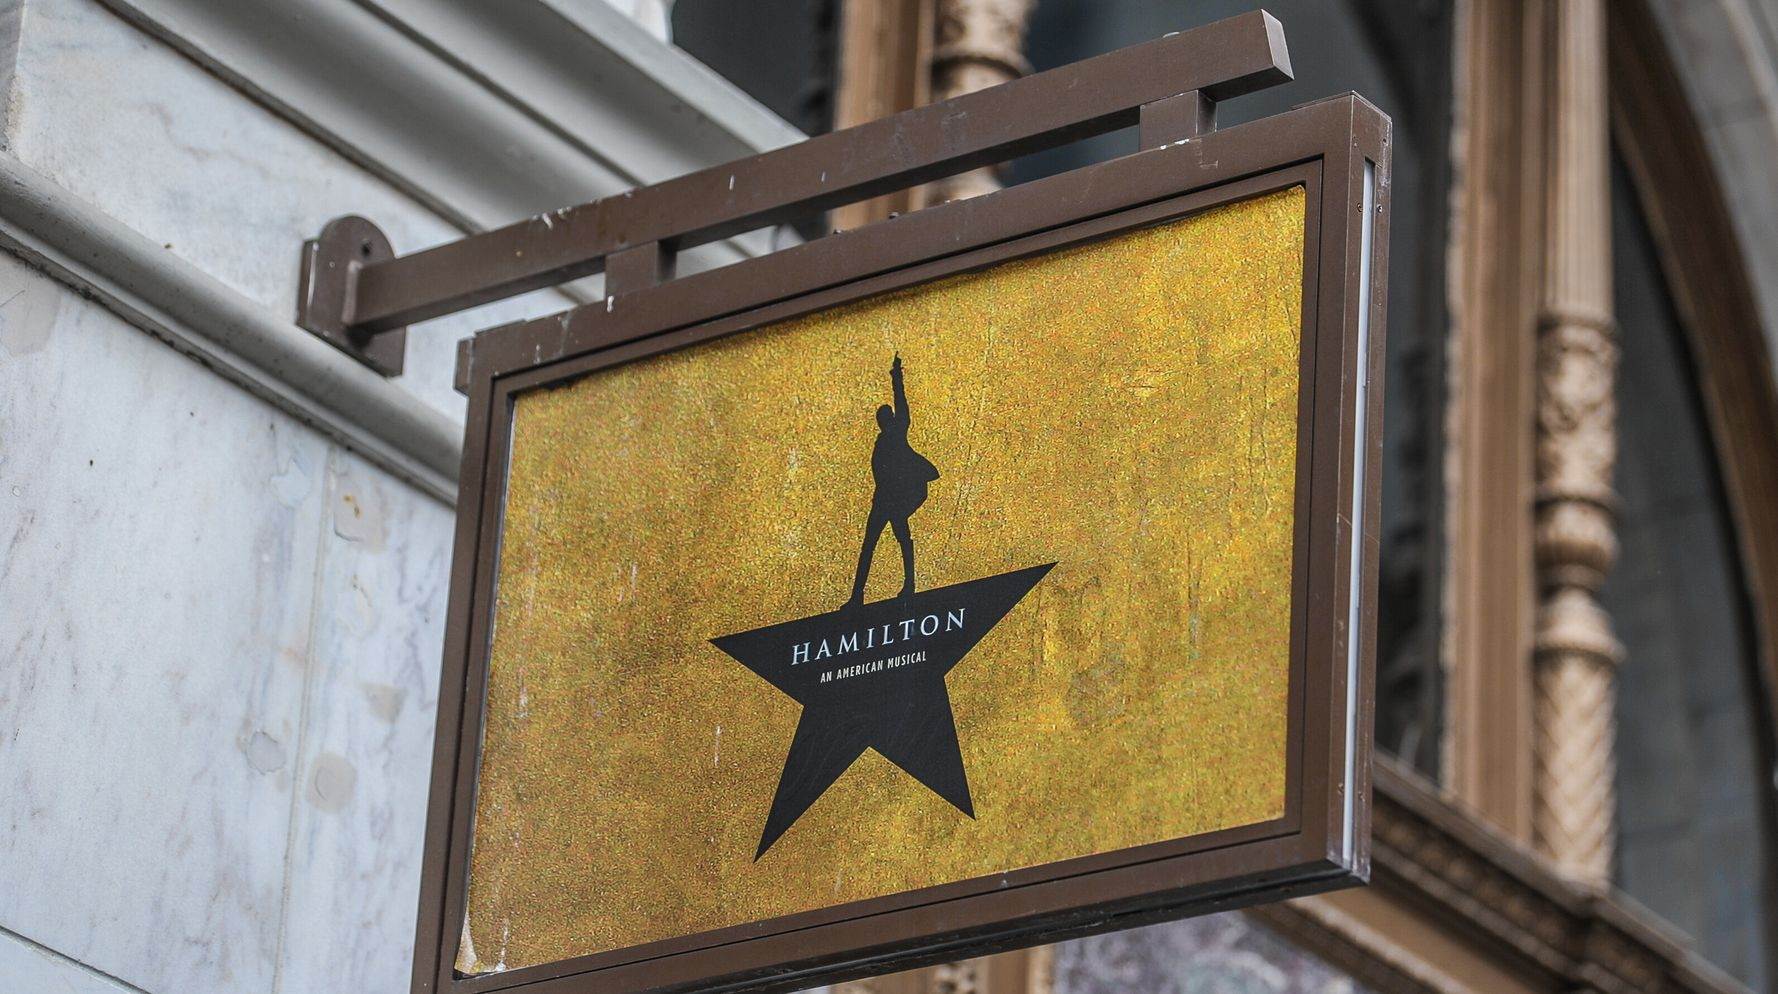 5 Years After Its Debut, 'Hamilton' Airs On Disney+ To A Nuanced Response